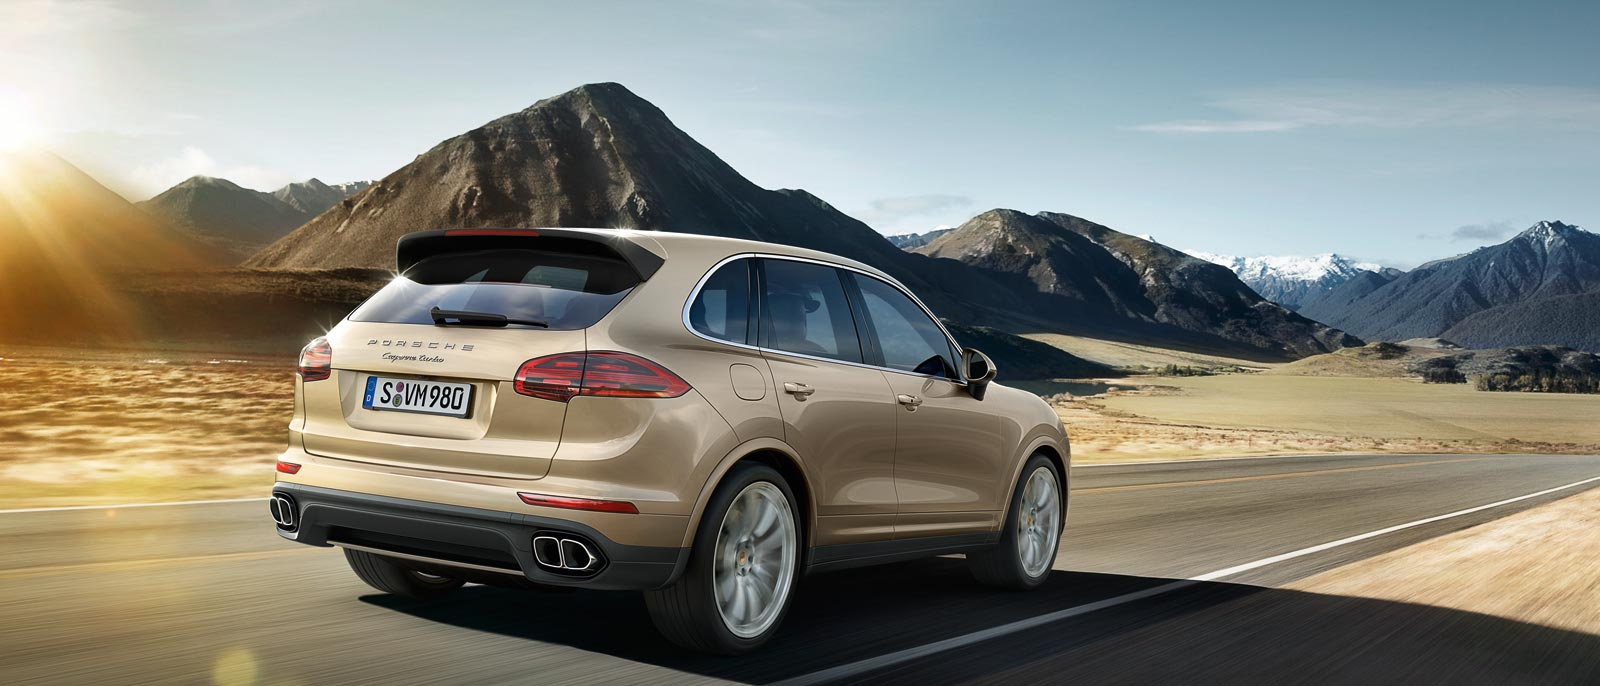 2015 Porsche Cayenne Turbo in the country